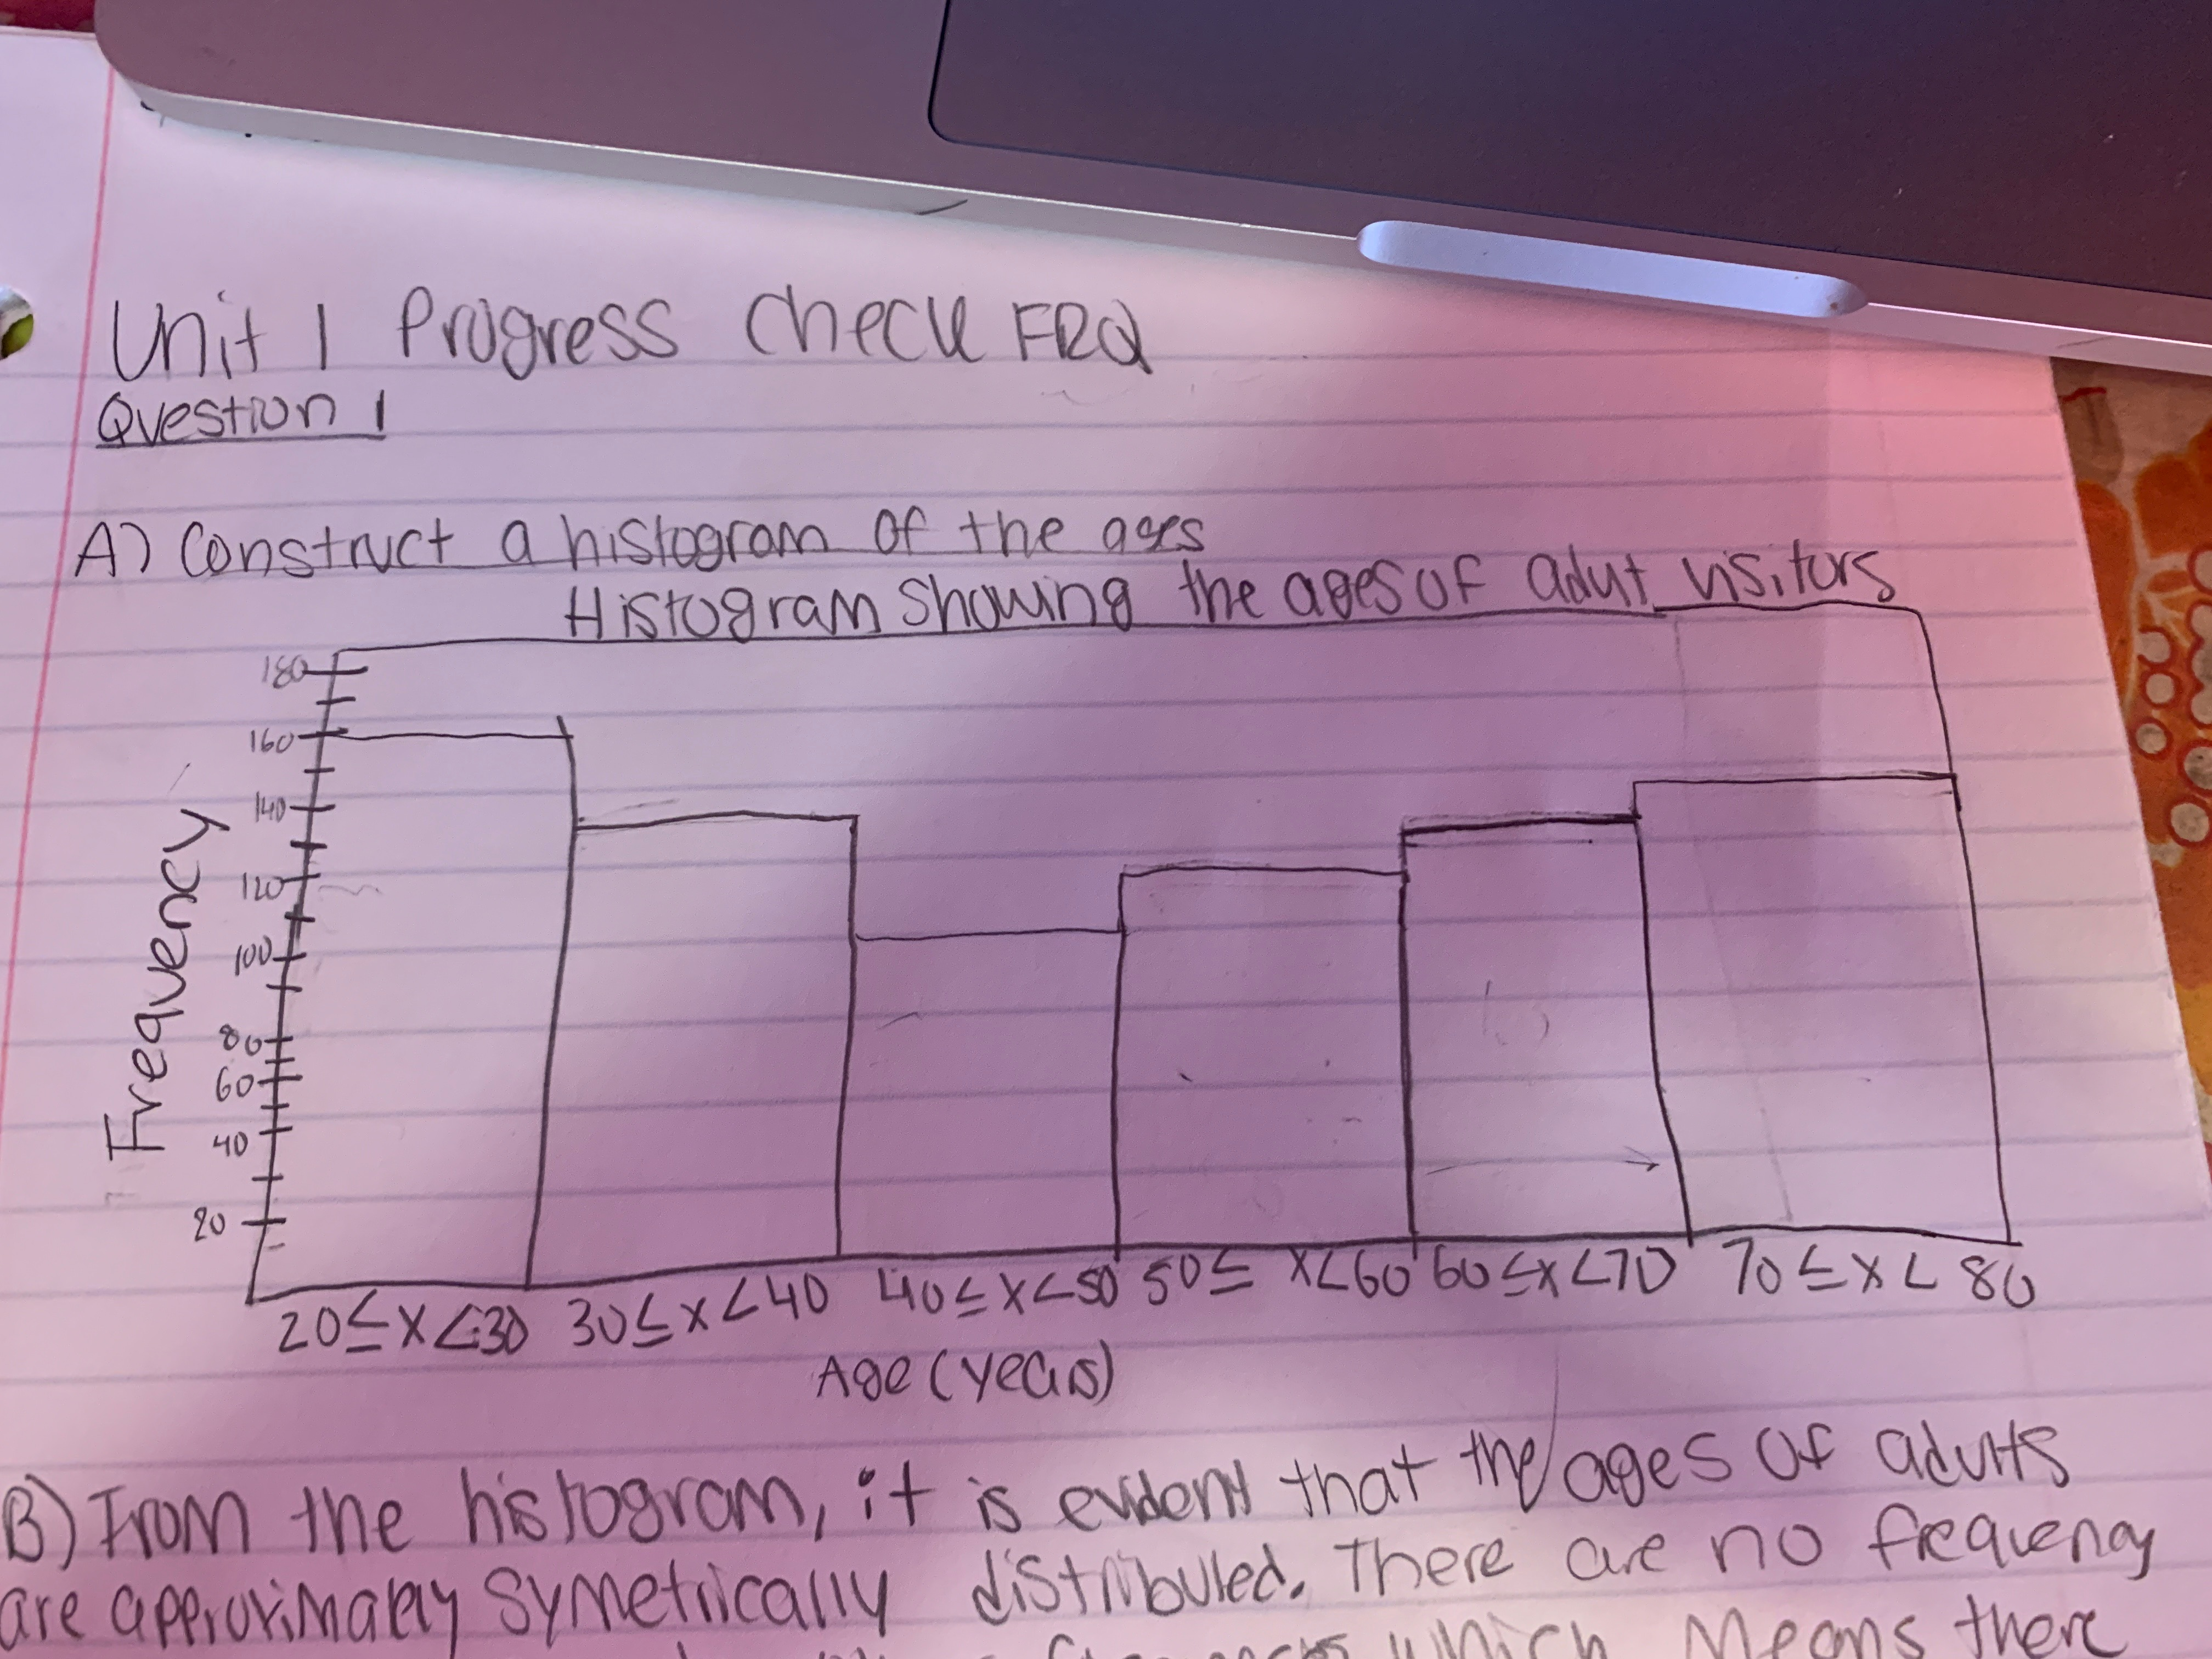 Answered Does The Histogram Provide Convincing